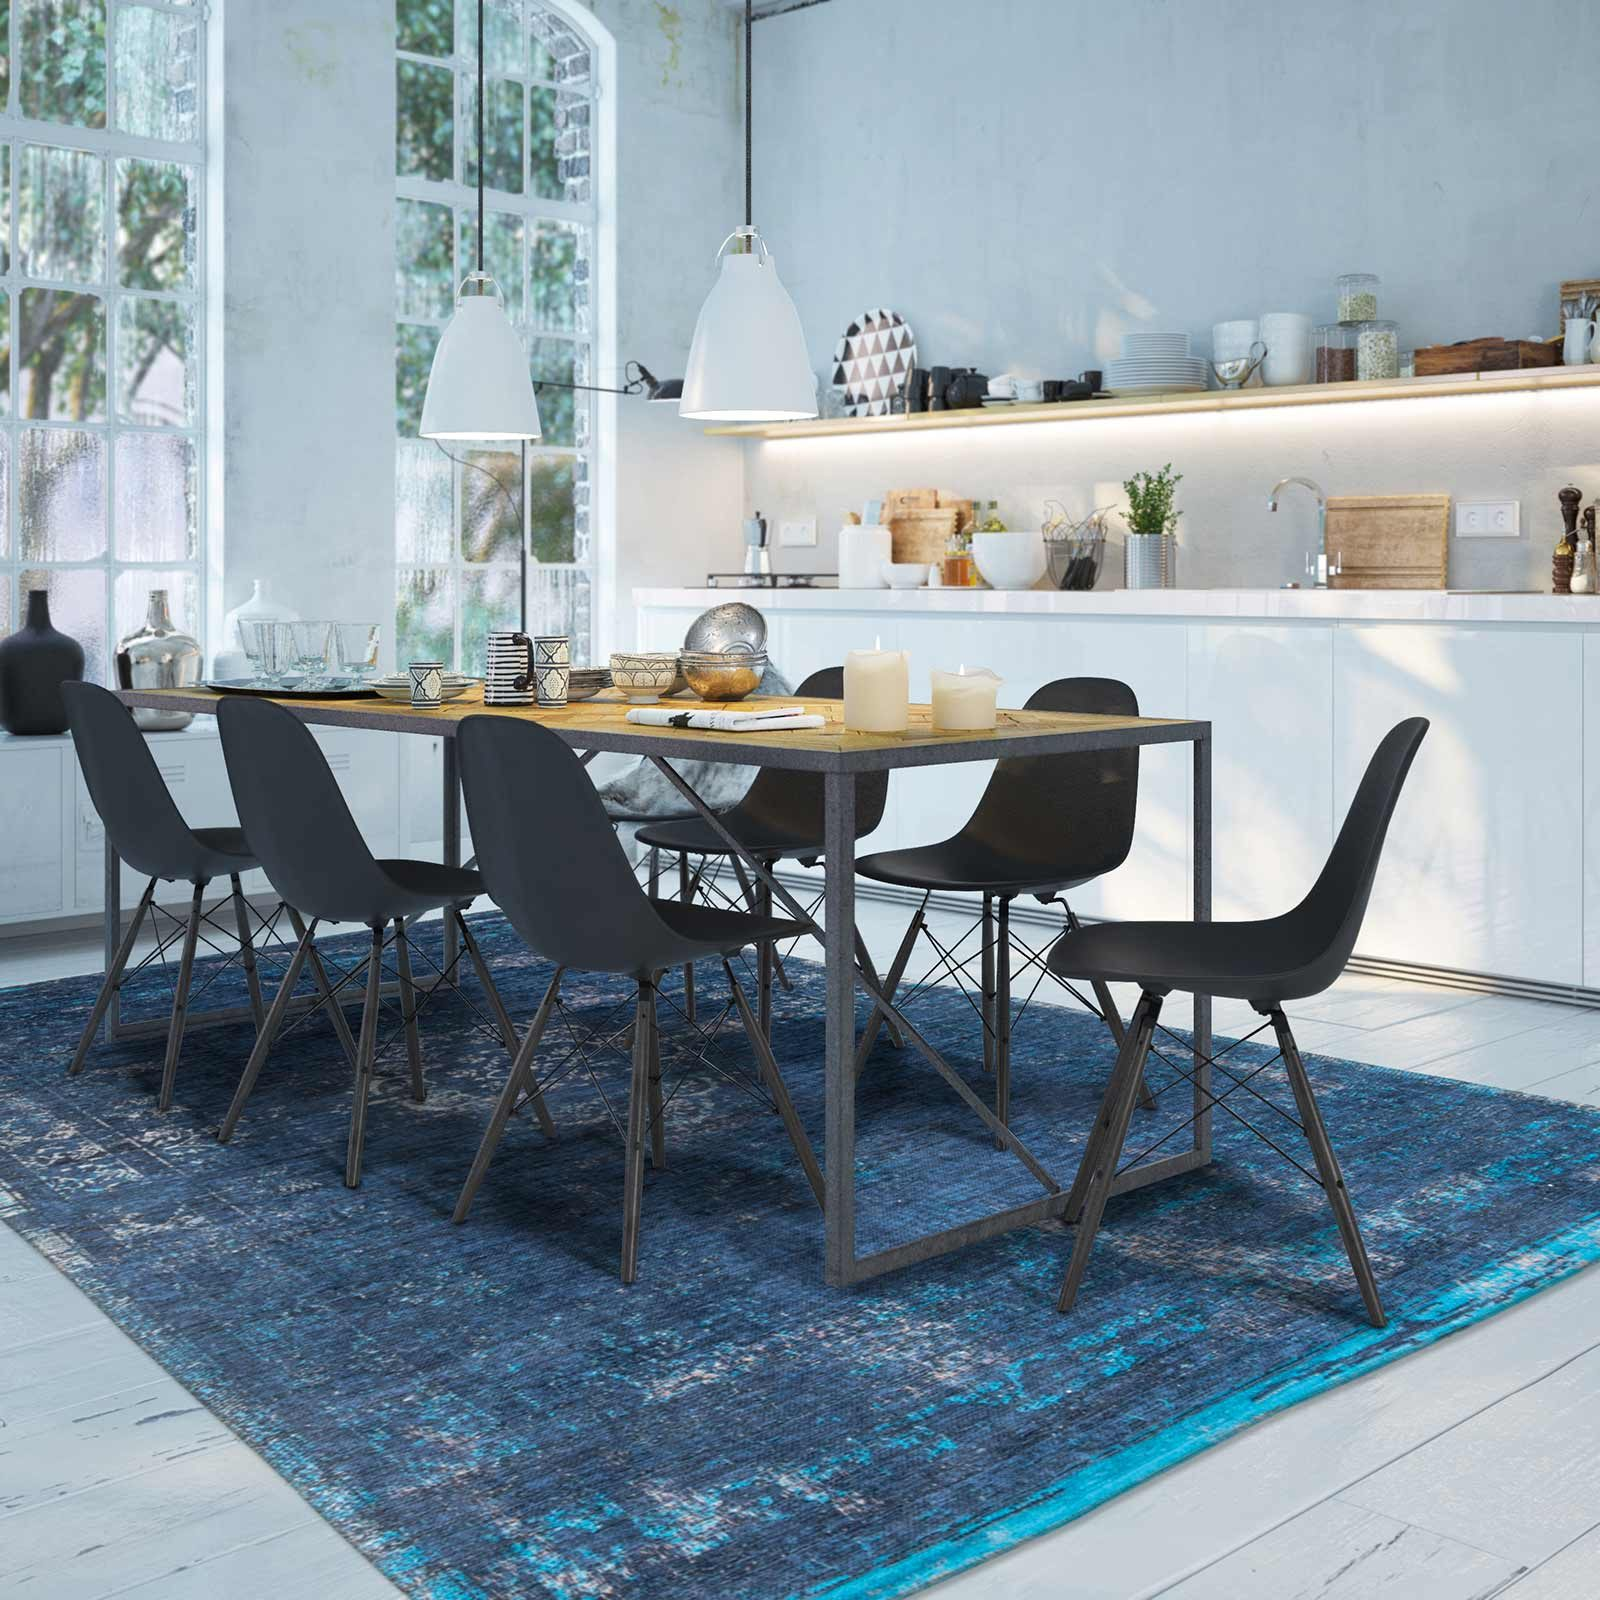 rug Louis De Poortere LX8254 Fading World Medaillon Blue Night interior